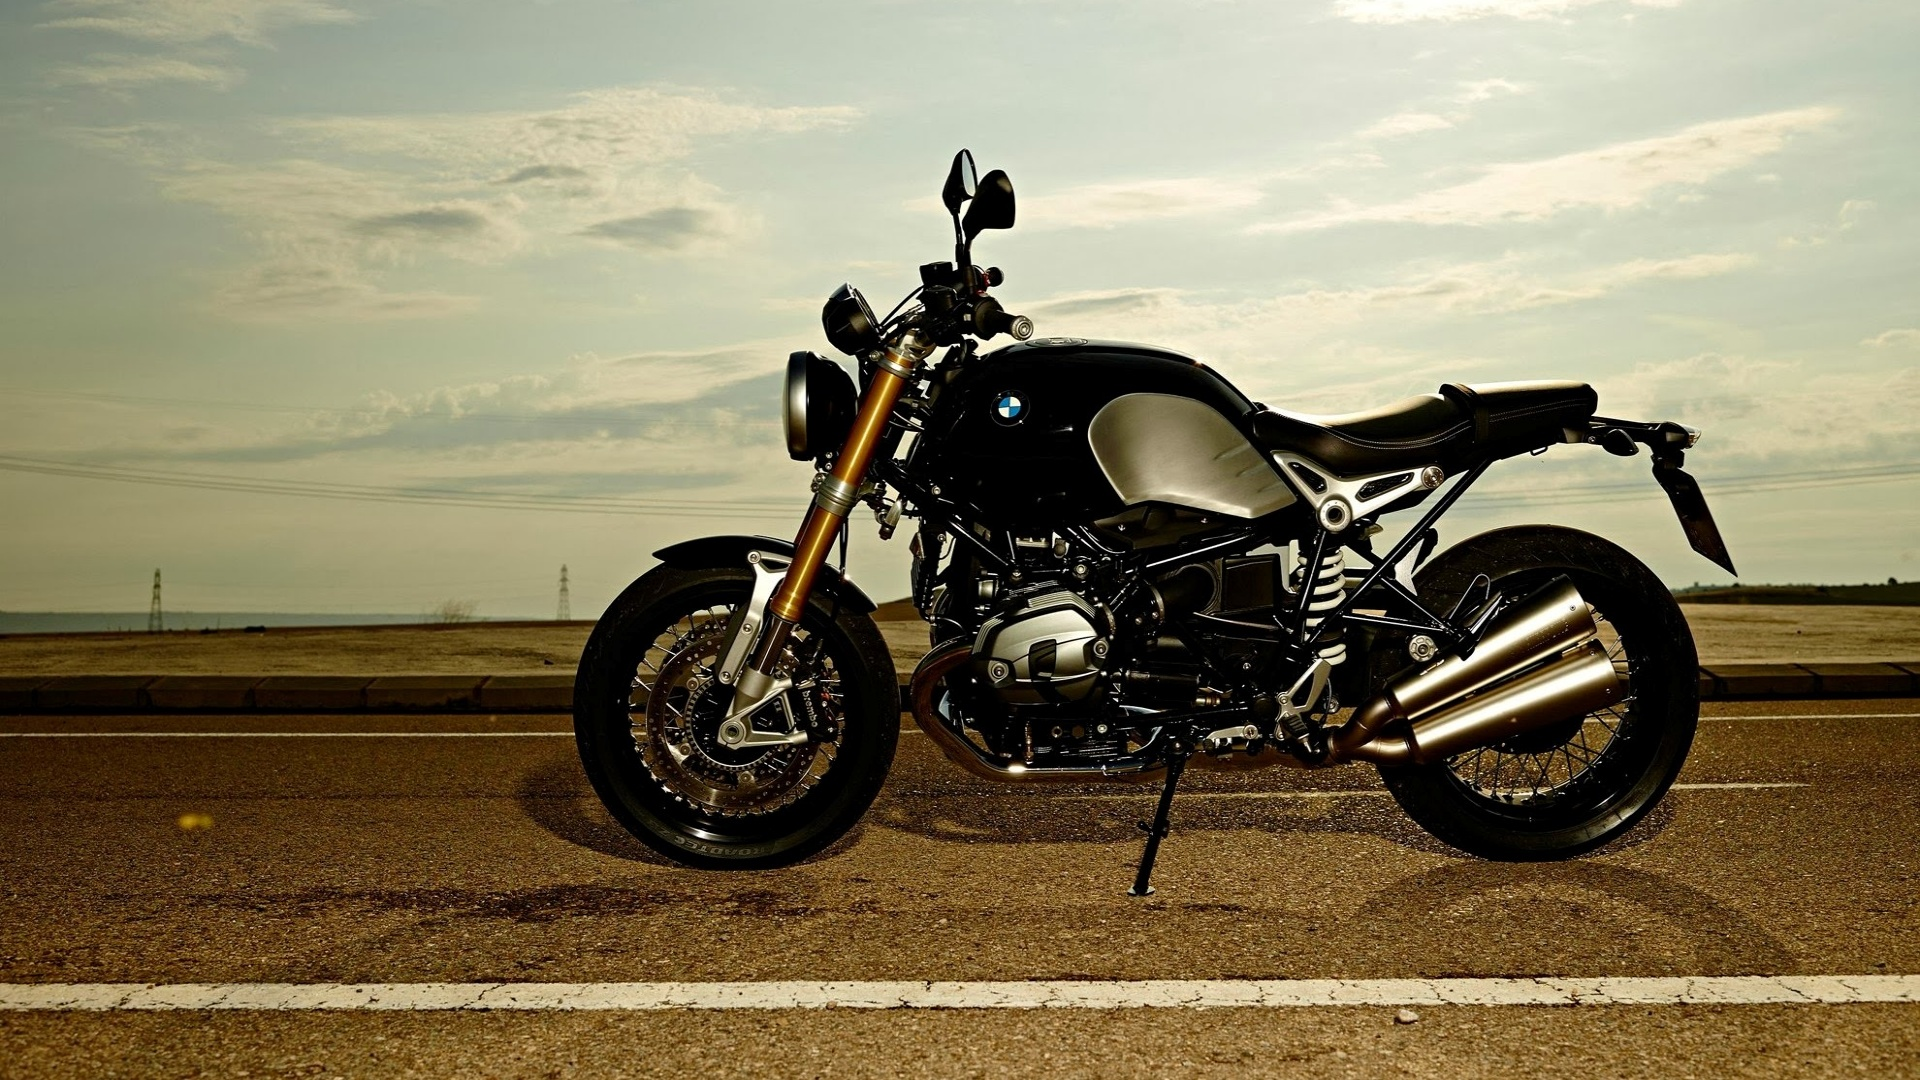 25 Bmw R Ninet 2014 Photo Bmw R Ninet Bike Bmw R Ninet Bike Picture Bmw R 1591 Bmw R Nine T Wallpapers 2014